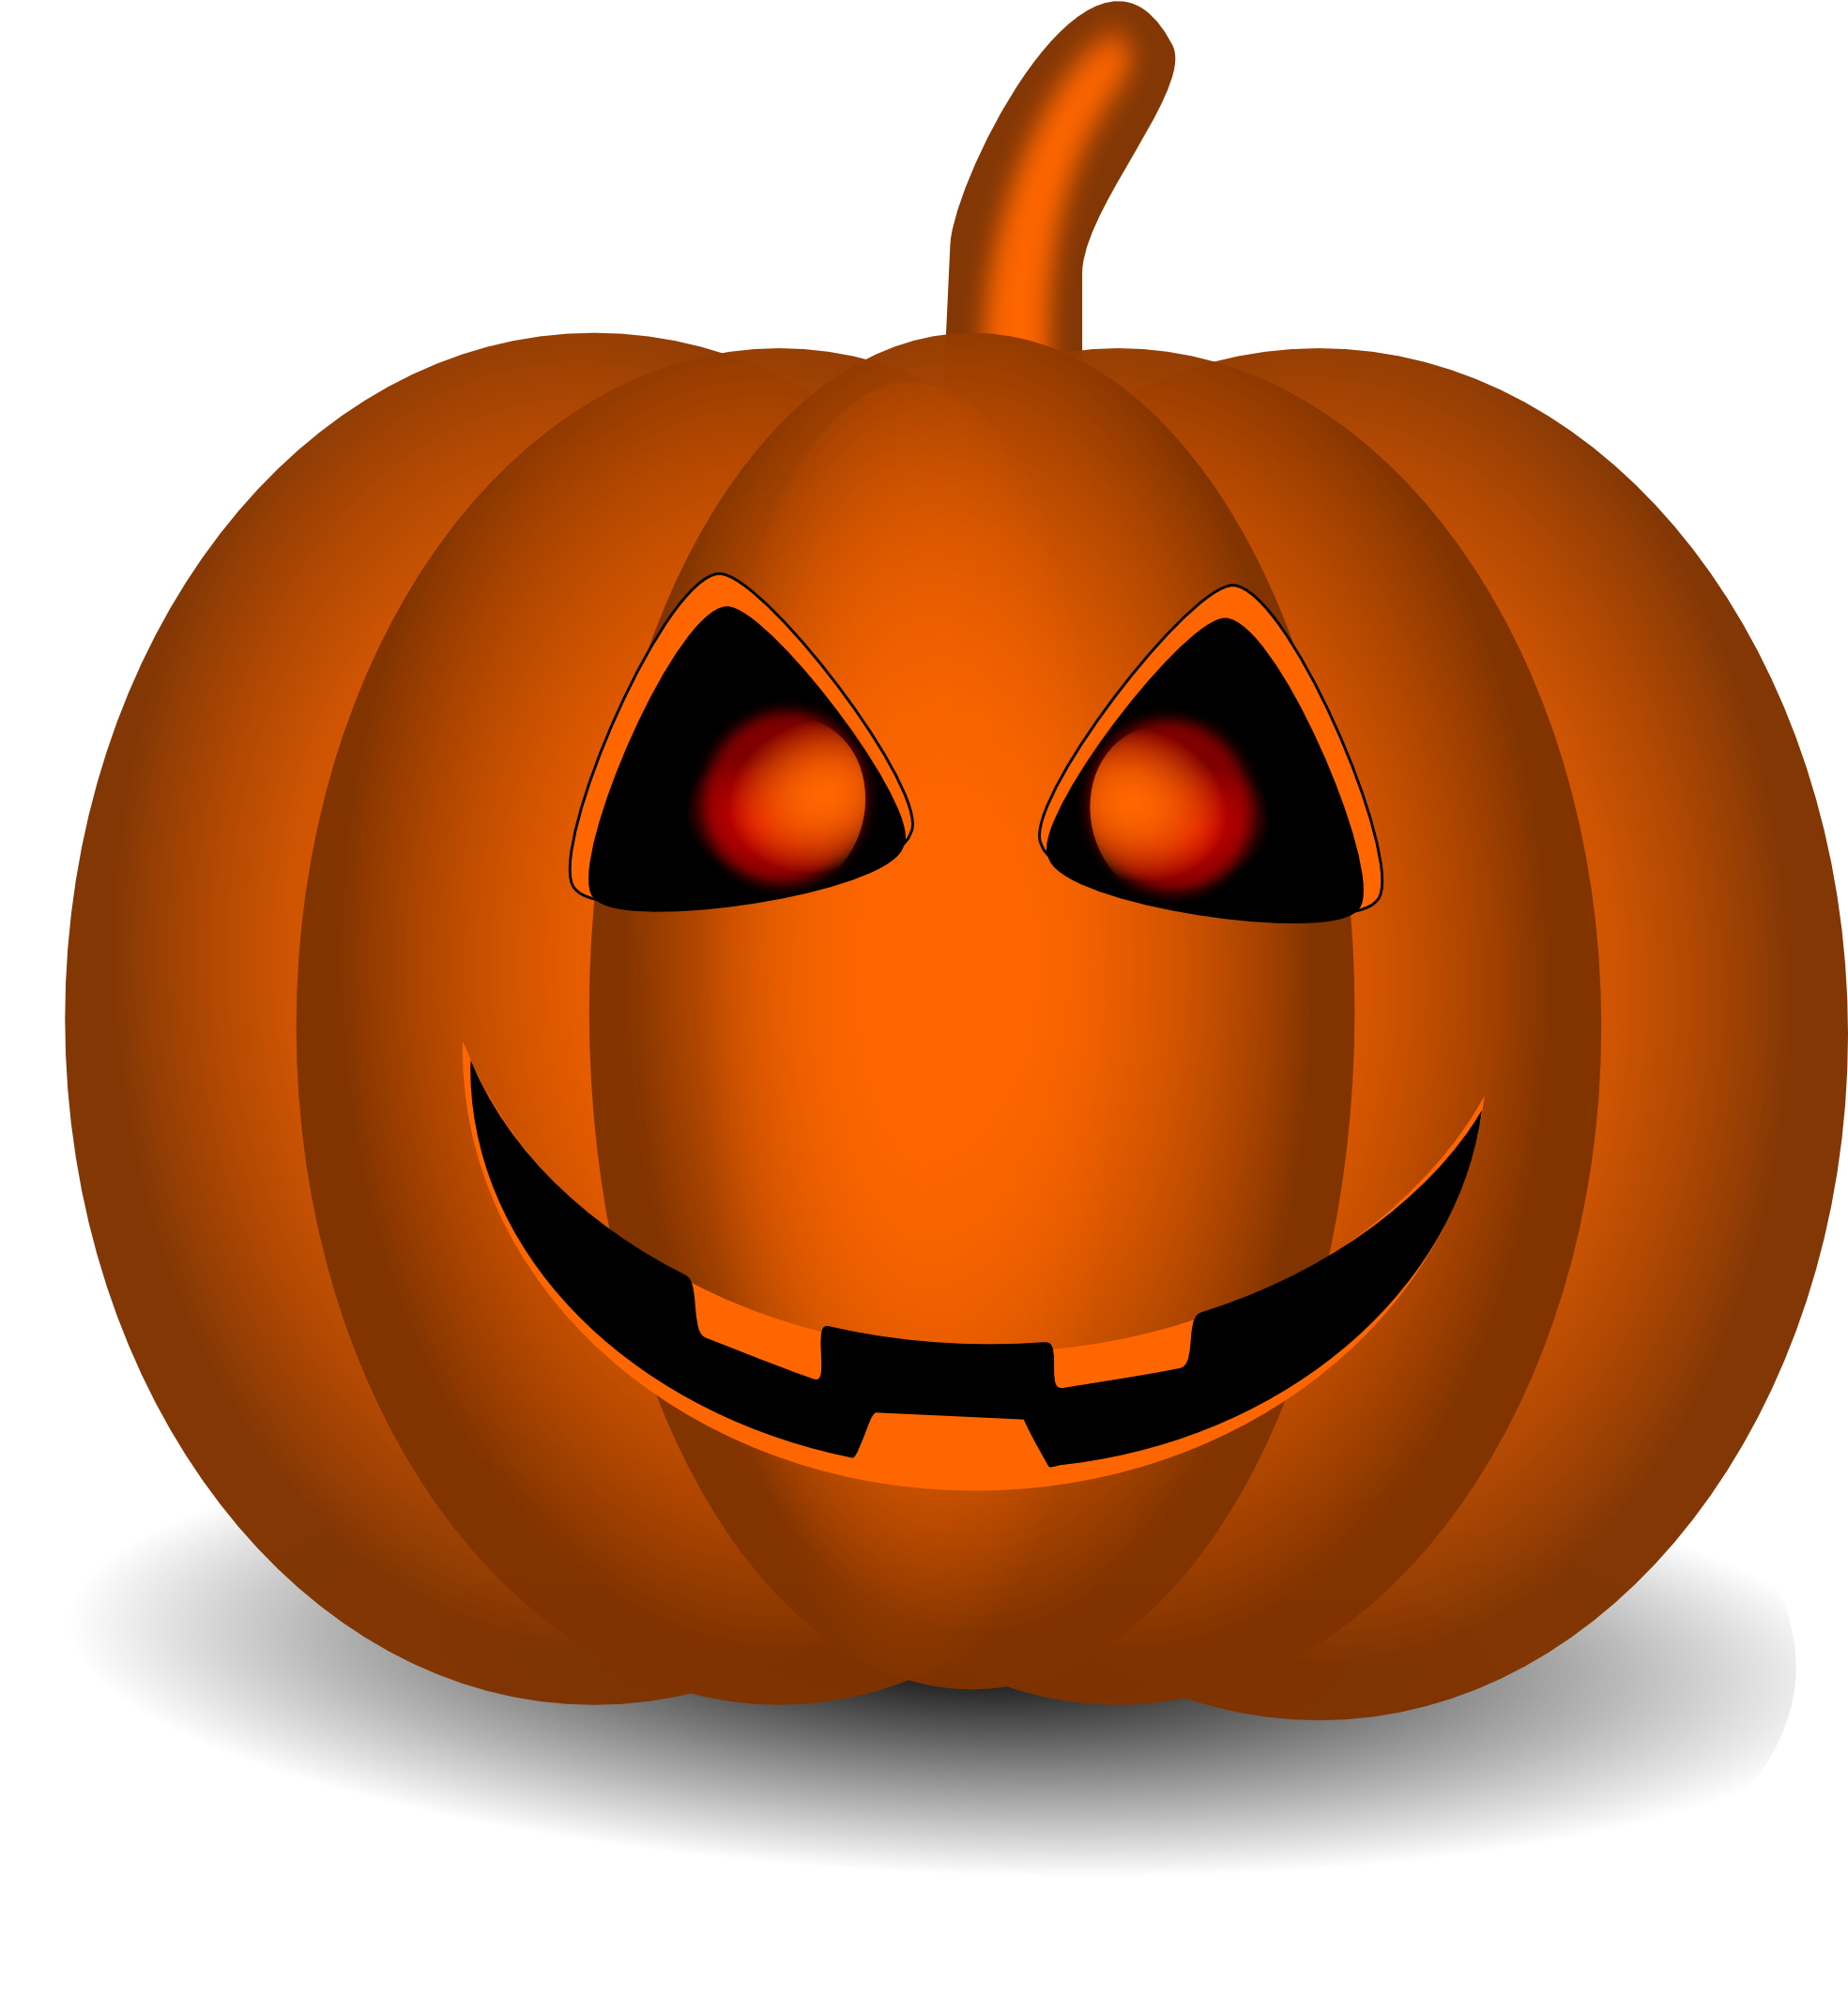 Scary pumpkin face clipart vector library download Halloween Transparent PNG Pictures - Free Icons and PNG Backgrounds vector library download